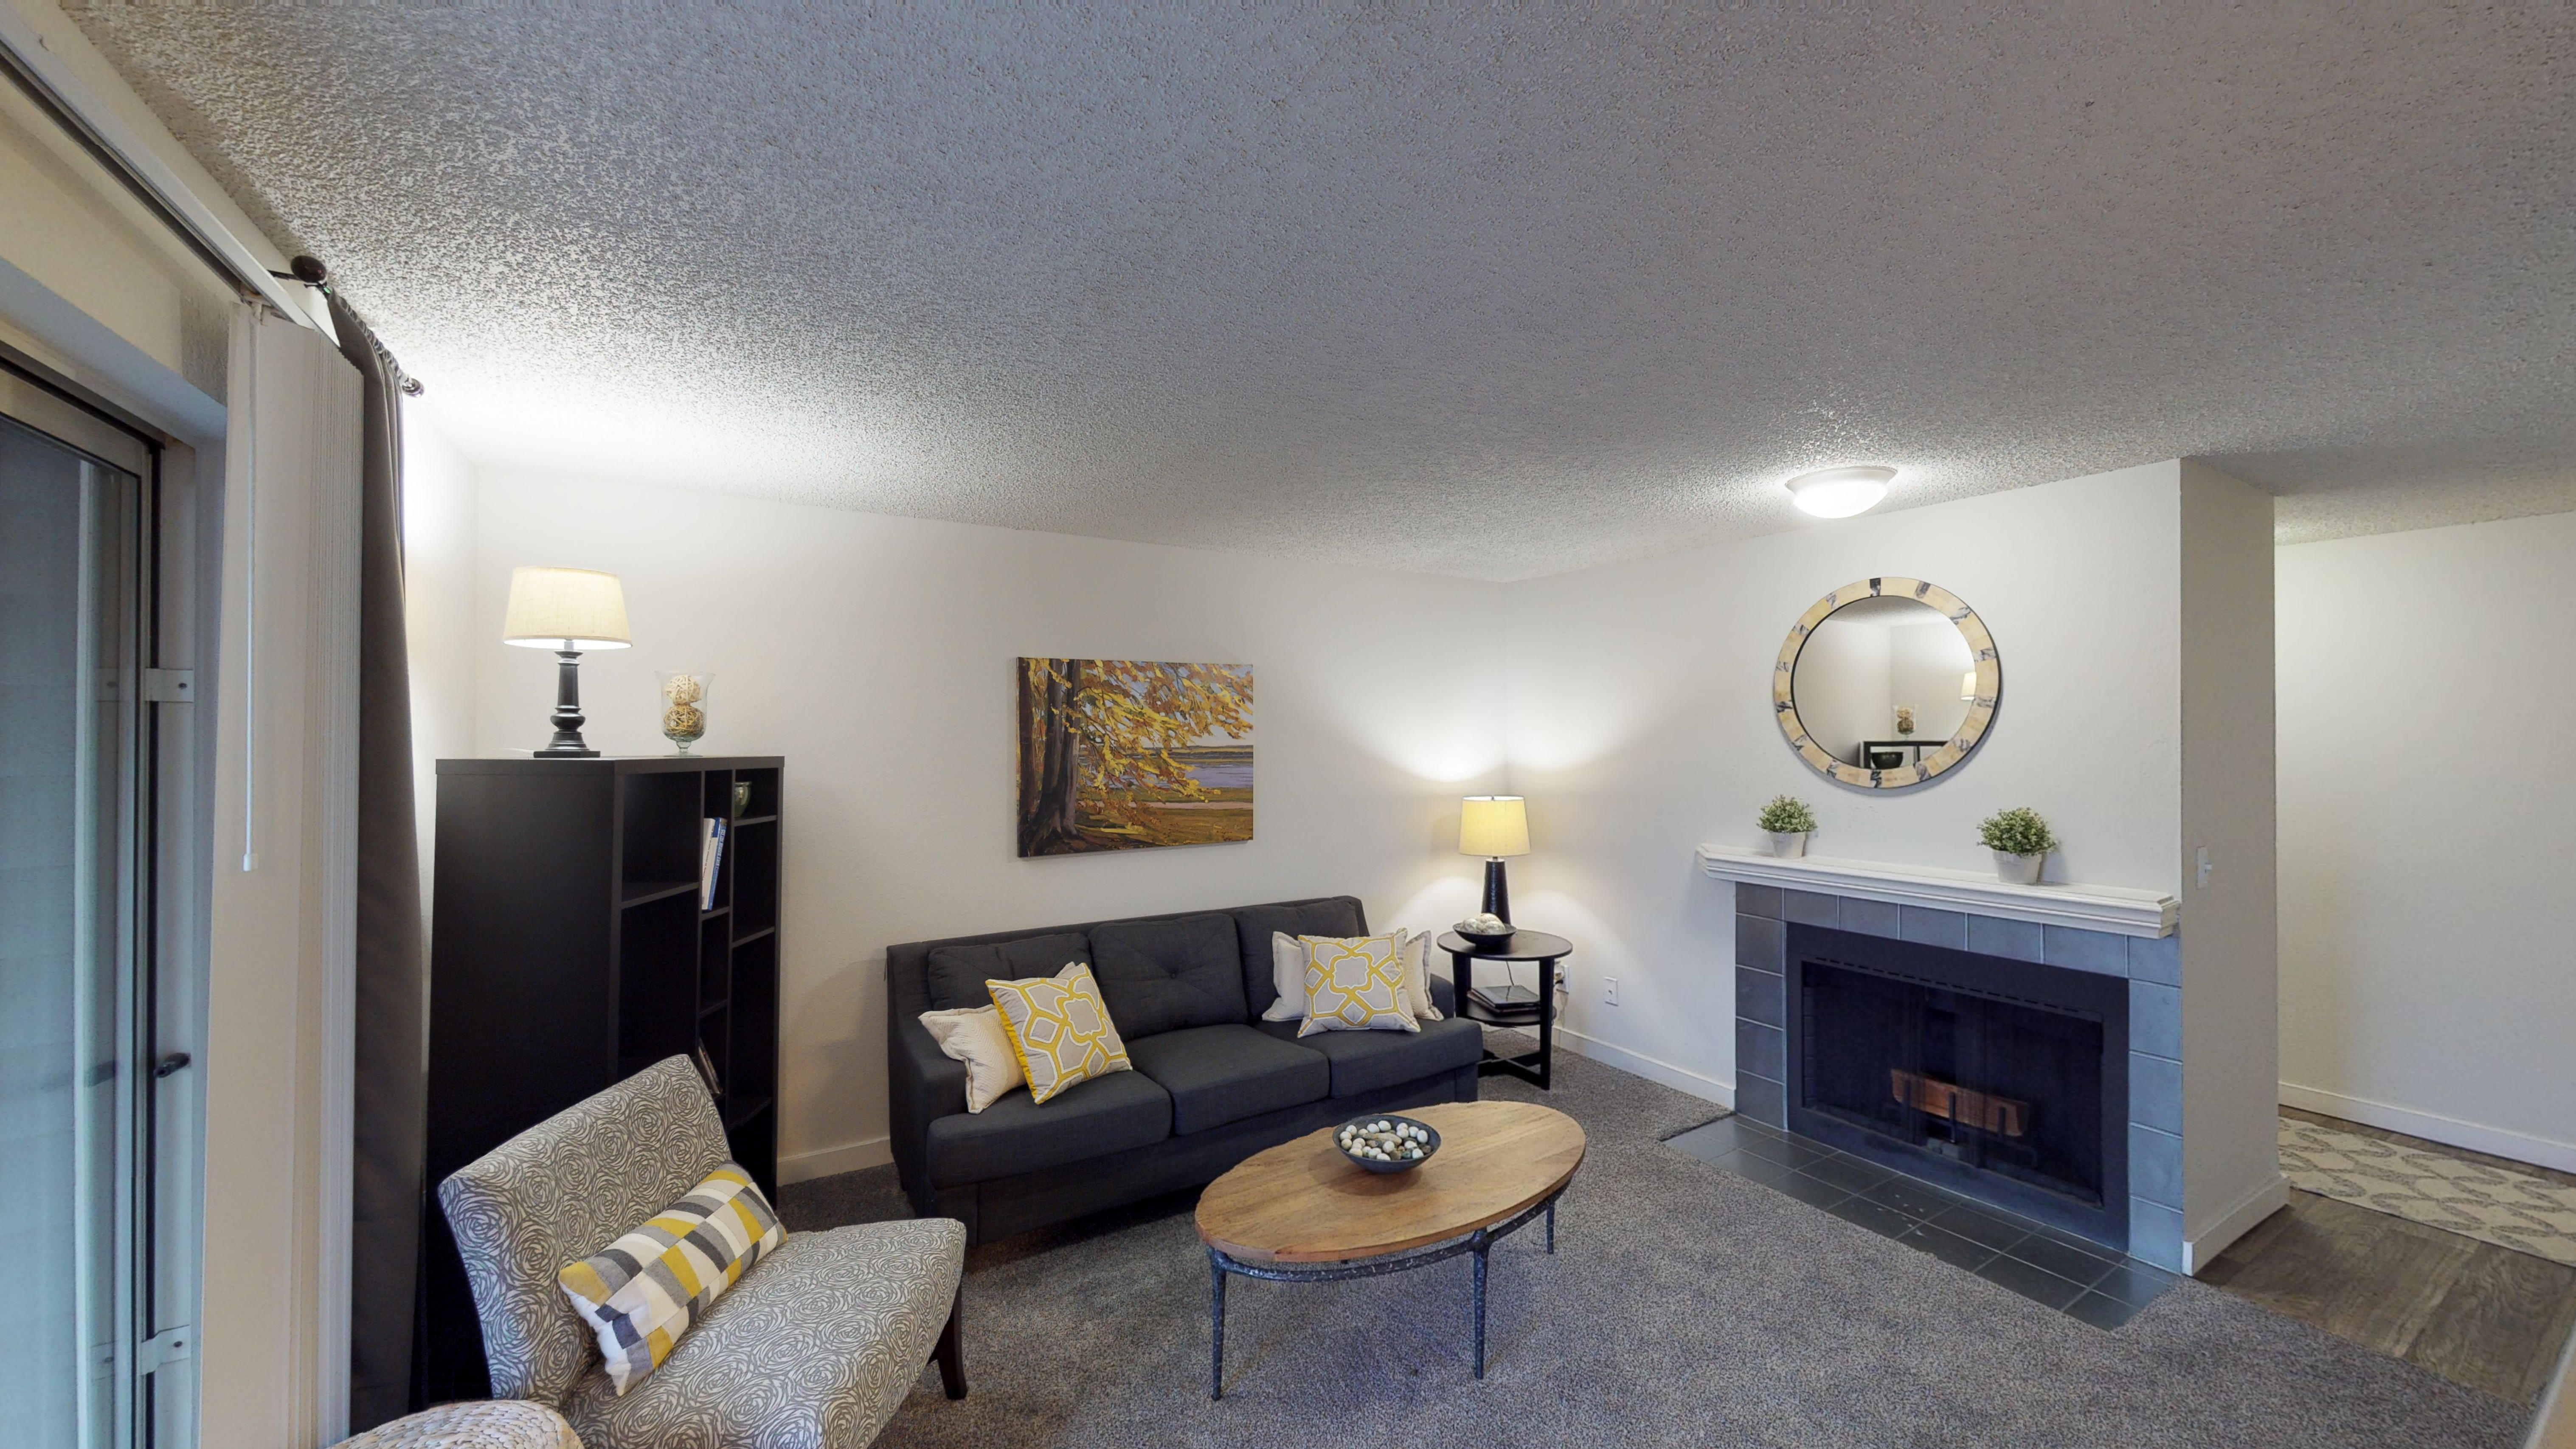 Apartments Near PLU Altitude 104 for Pacific Lutheran University Students in Tacoma, WA